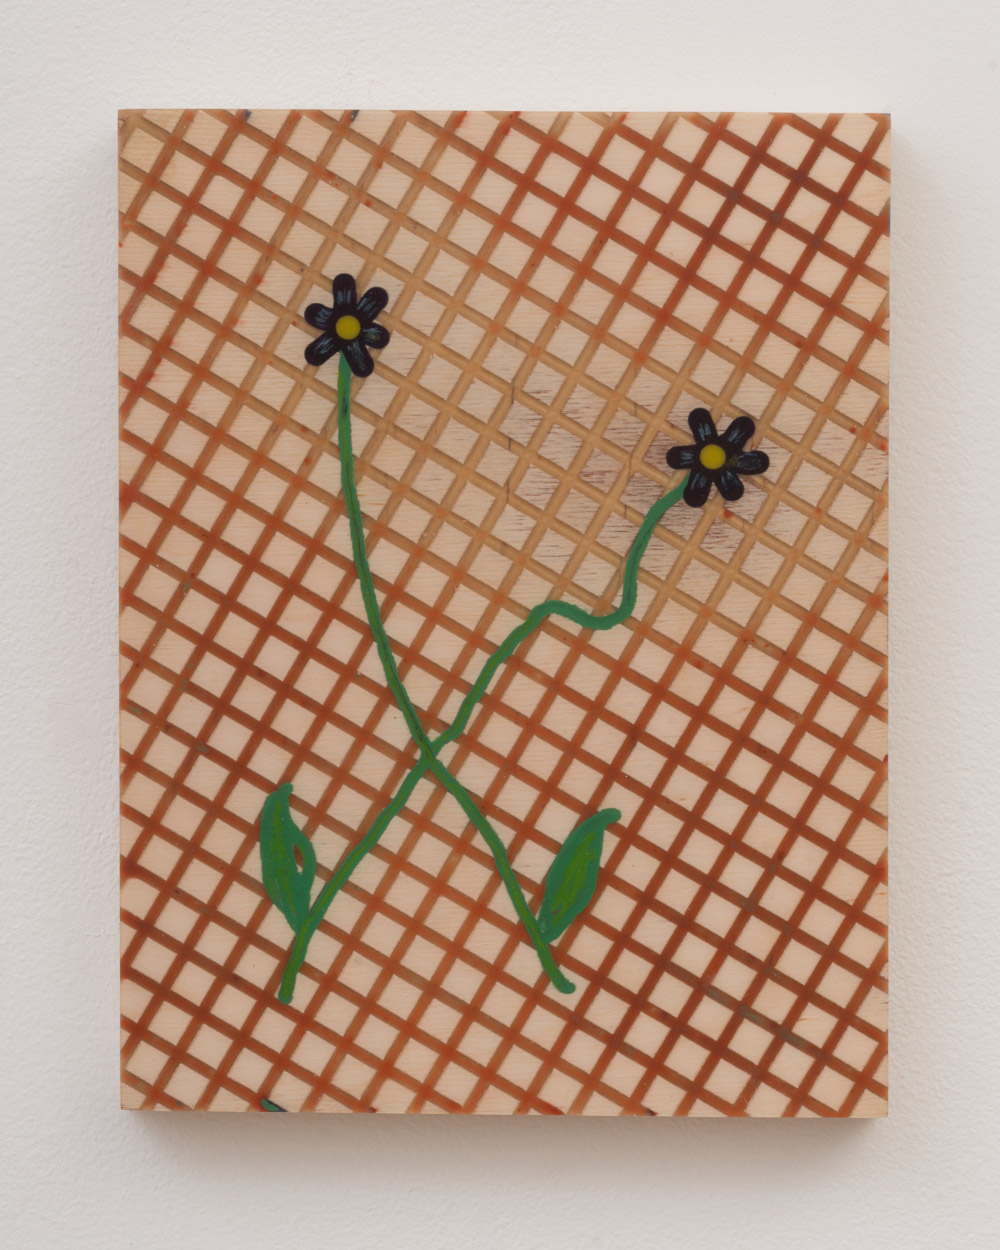 """<p><span class=""""name"""">Tommy Coleman</span><br><em>Two Flowers On My Picnic Blanket</em><span class='media'>UV resistant epoxy resin, food coloring, crayon, and pigment on panel</span>11 x 8.5 in (27.9 x 21.6 cm)<br>2018<br><a class='inquire' href='mailto:info@gildargallery.com?subject=Artwork Inquiry TCOL0005&body=I am interested in finding out more about Two Flowers On My Picnic Blanket by Tommy Coleman'>Inquire</a></p>"""